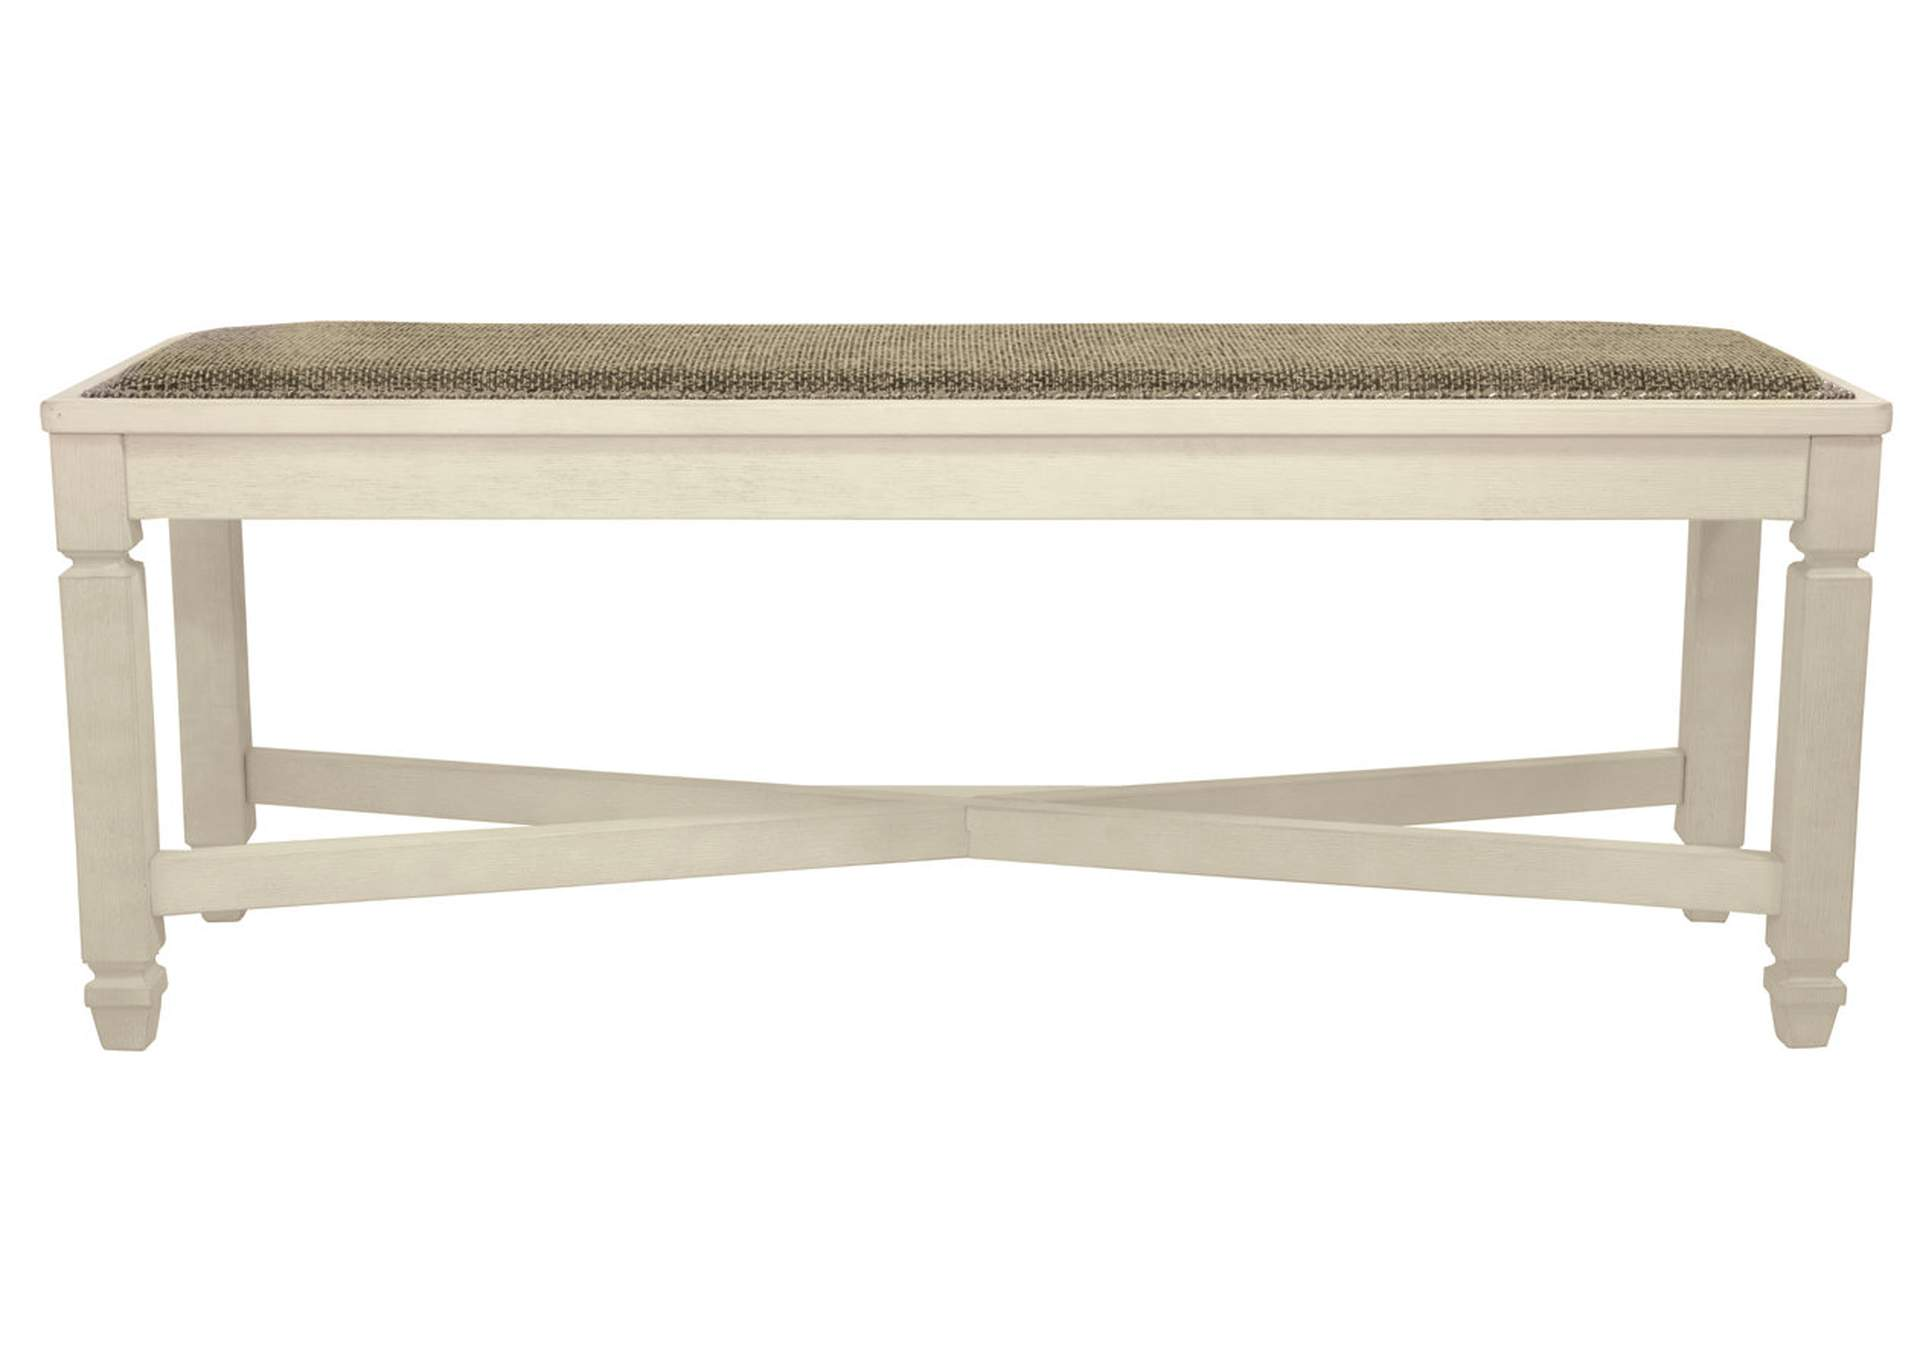 Bolanburg Antique White Large Upholstered Dining Room Bench,Signature Design By Ashley